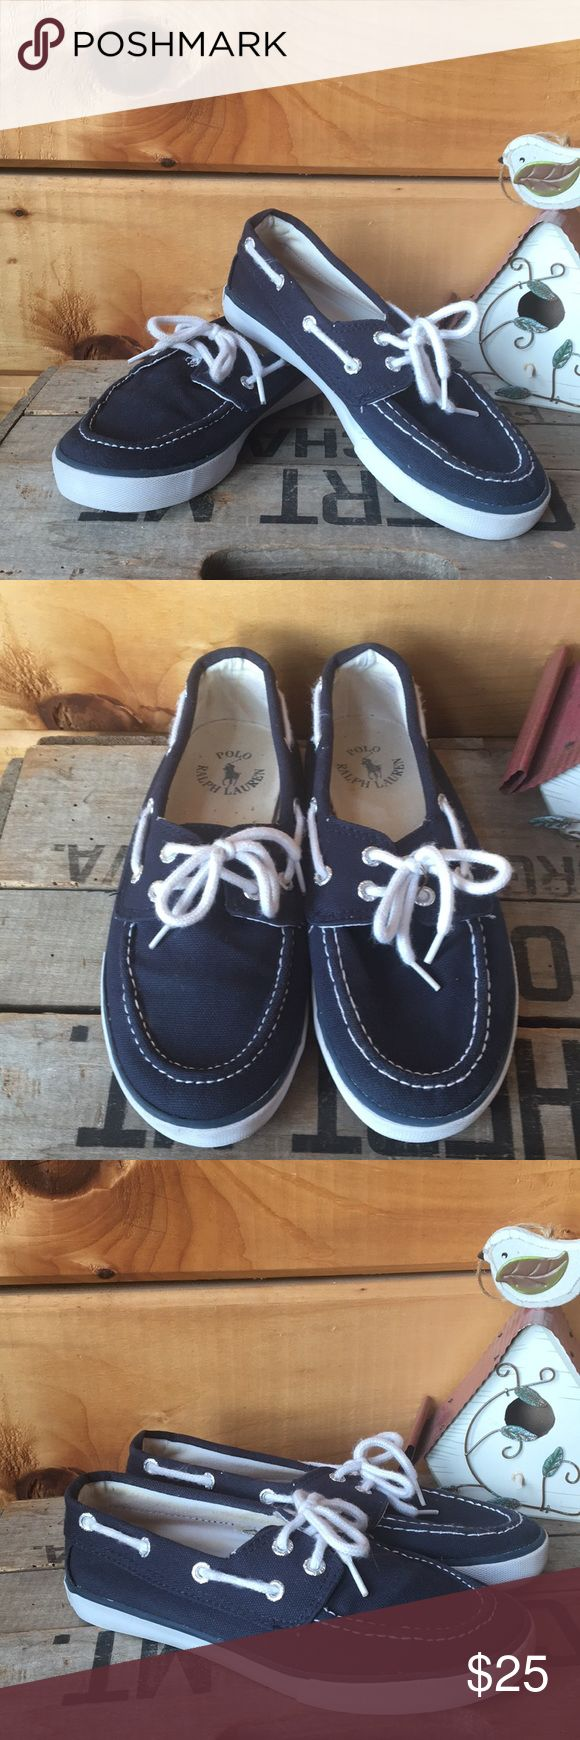 KIDS Polo Ralph Lauren shoes Navy lace up boat shoes in great used condition. Polo by Ralph Lauren Shoes Sneakers